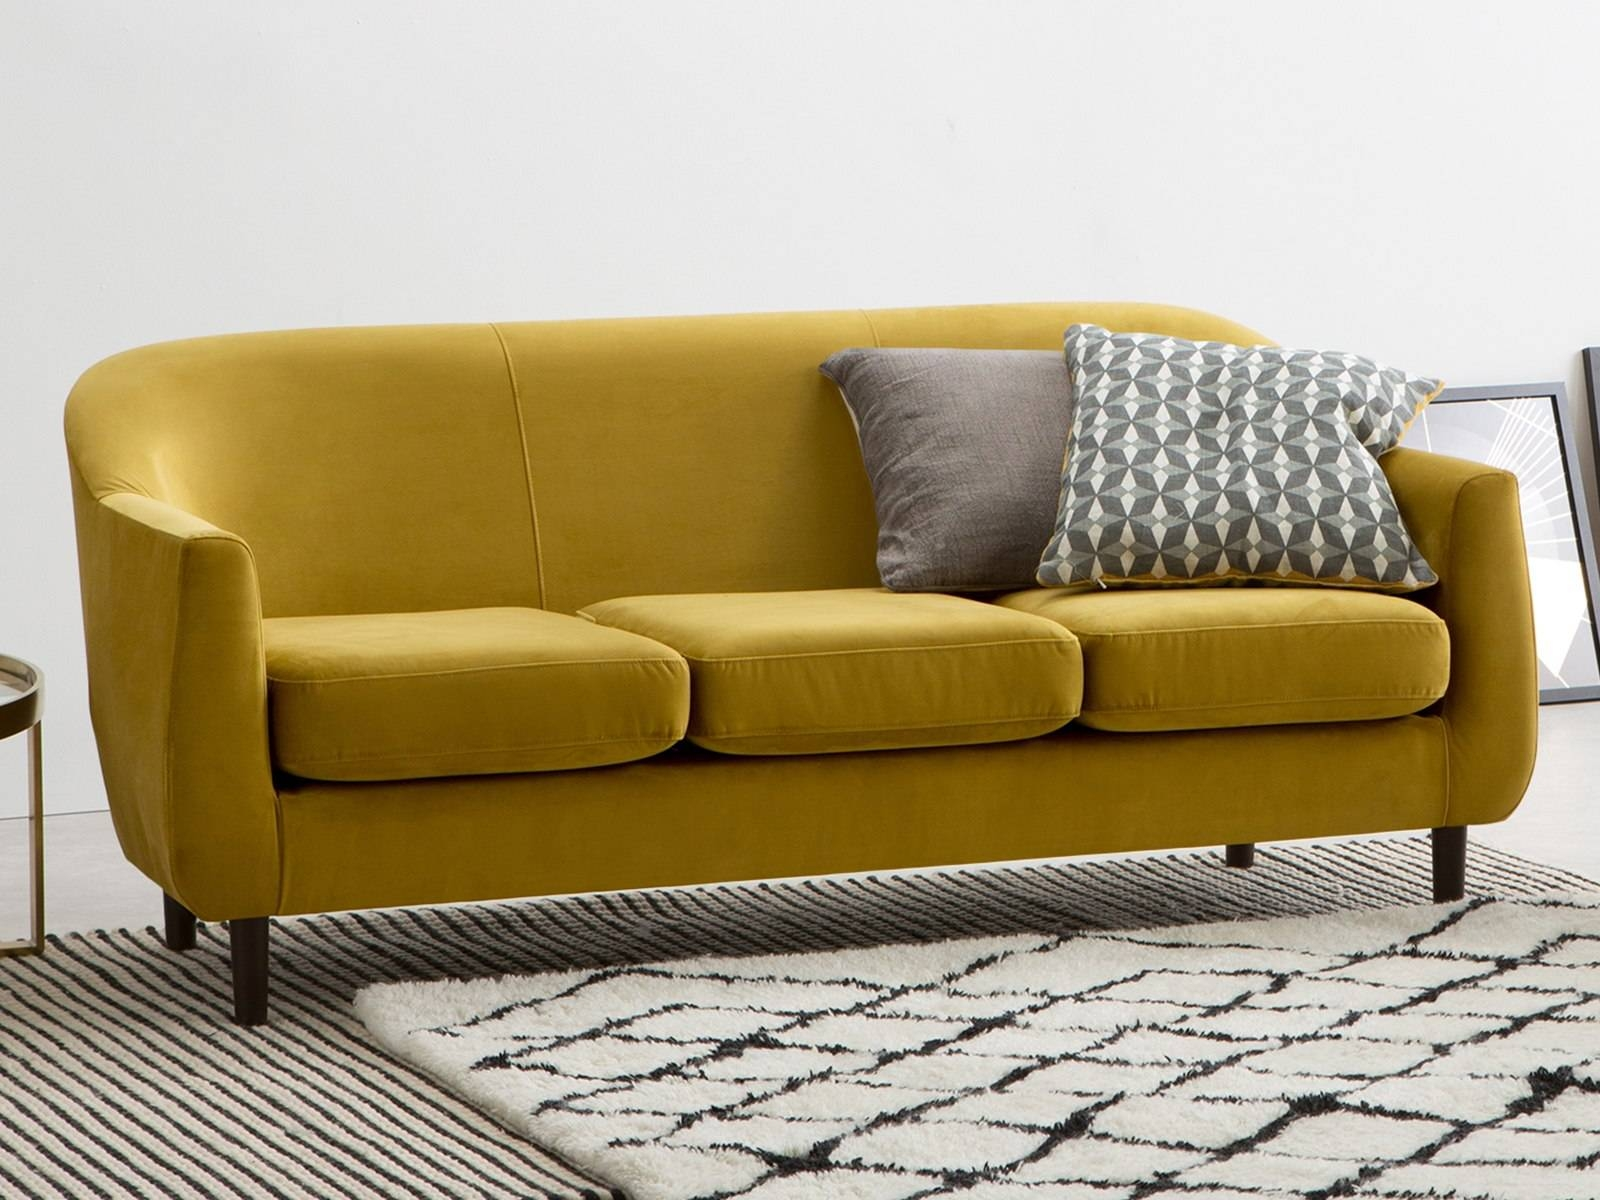 Sofa | Designer Couch & Sofas | Made throughout Sofas (Image 9 of 15)